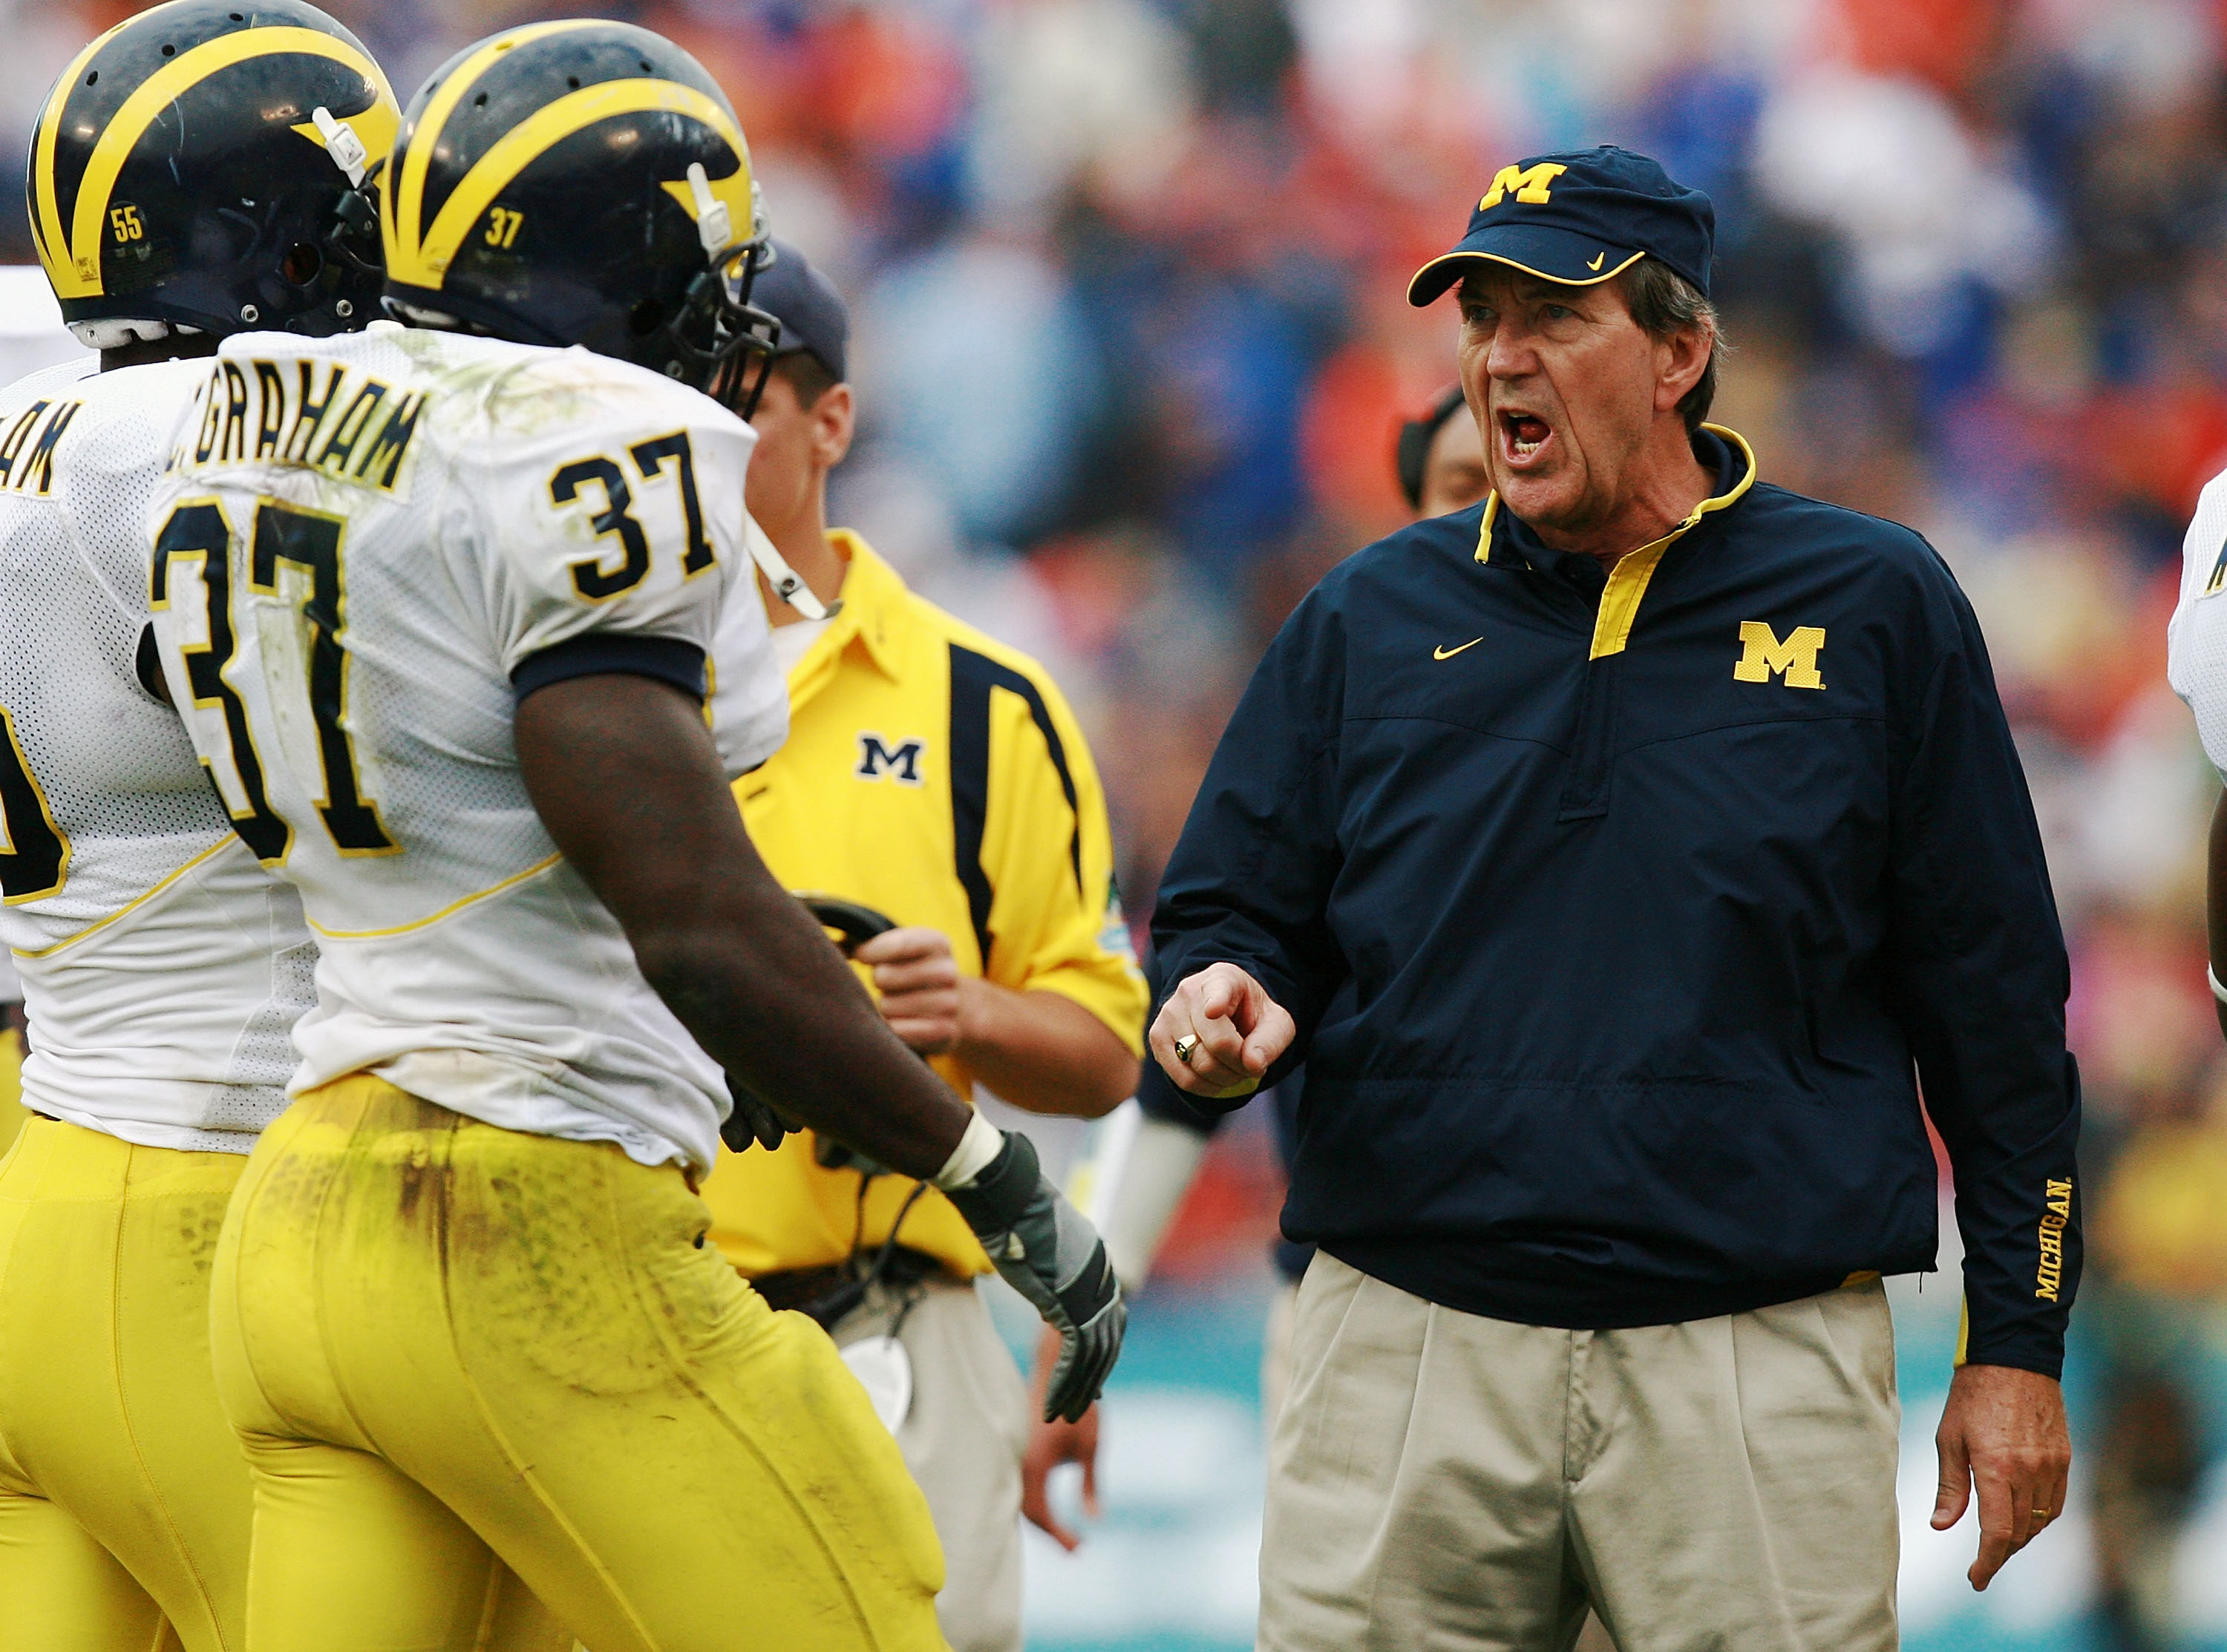 ORLANDO, FL - JANUARY 01:  Head coach Lloyd Carr of the Michigan Wolverines yells toward his players during their victory over the Florida Gators in the Capital One Bowl at Florida Citrus Bowl on January 1, 2008 in Orlando, Florida. Michigan defeated Flor